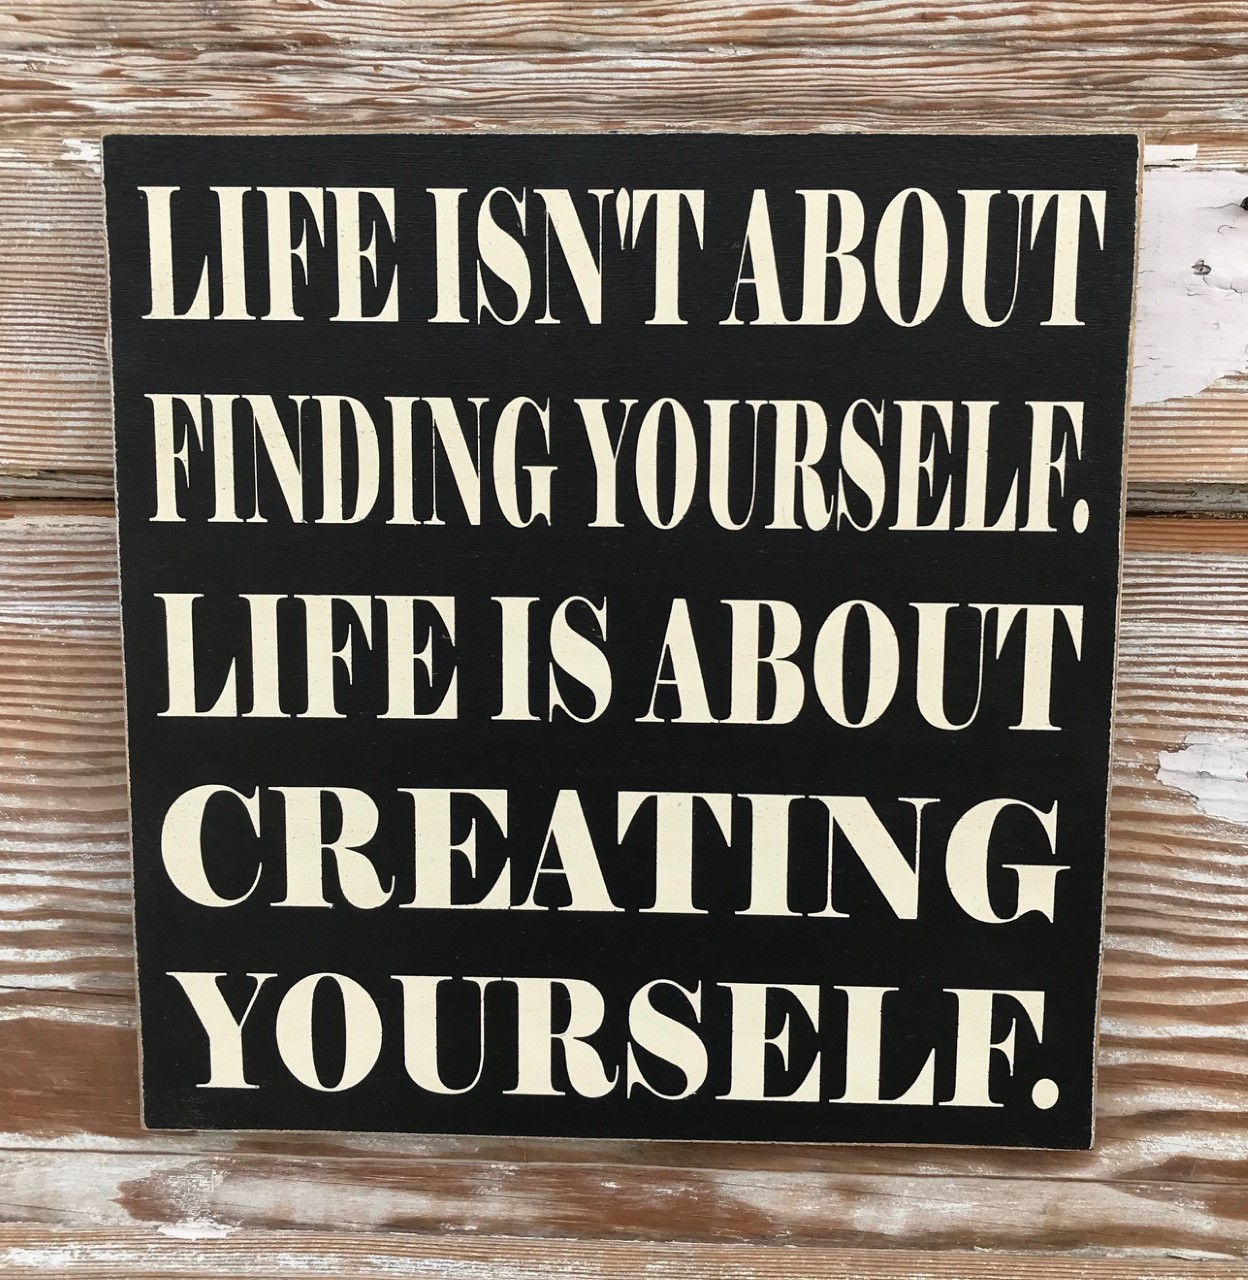 Life Isn't About Finding Yourself.  Life Is About Creating Yourself.  Wood Sign